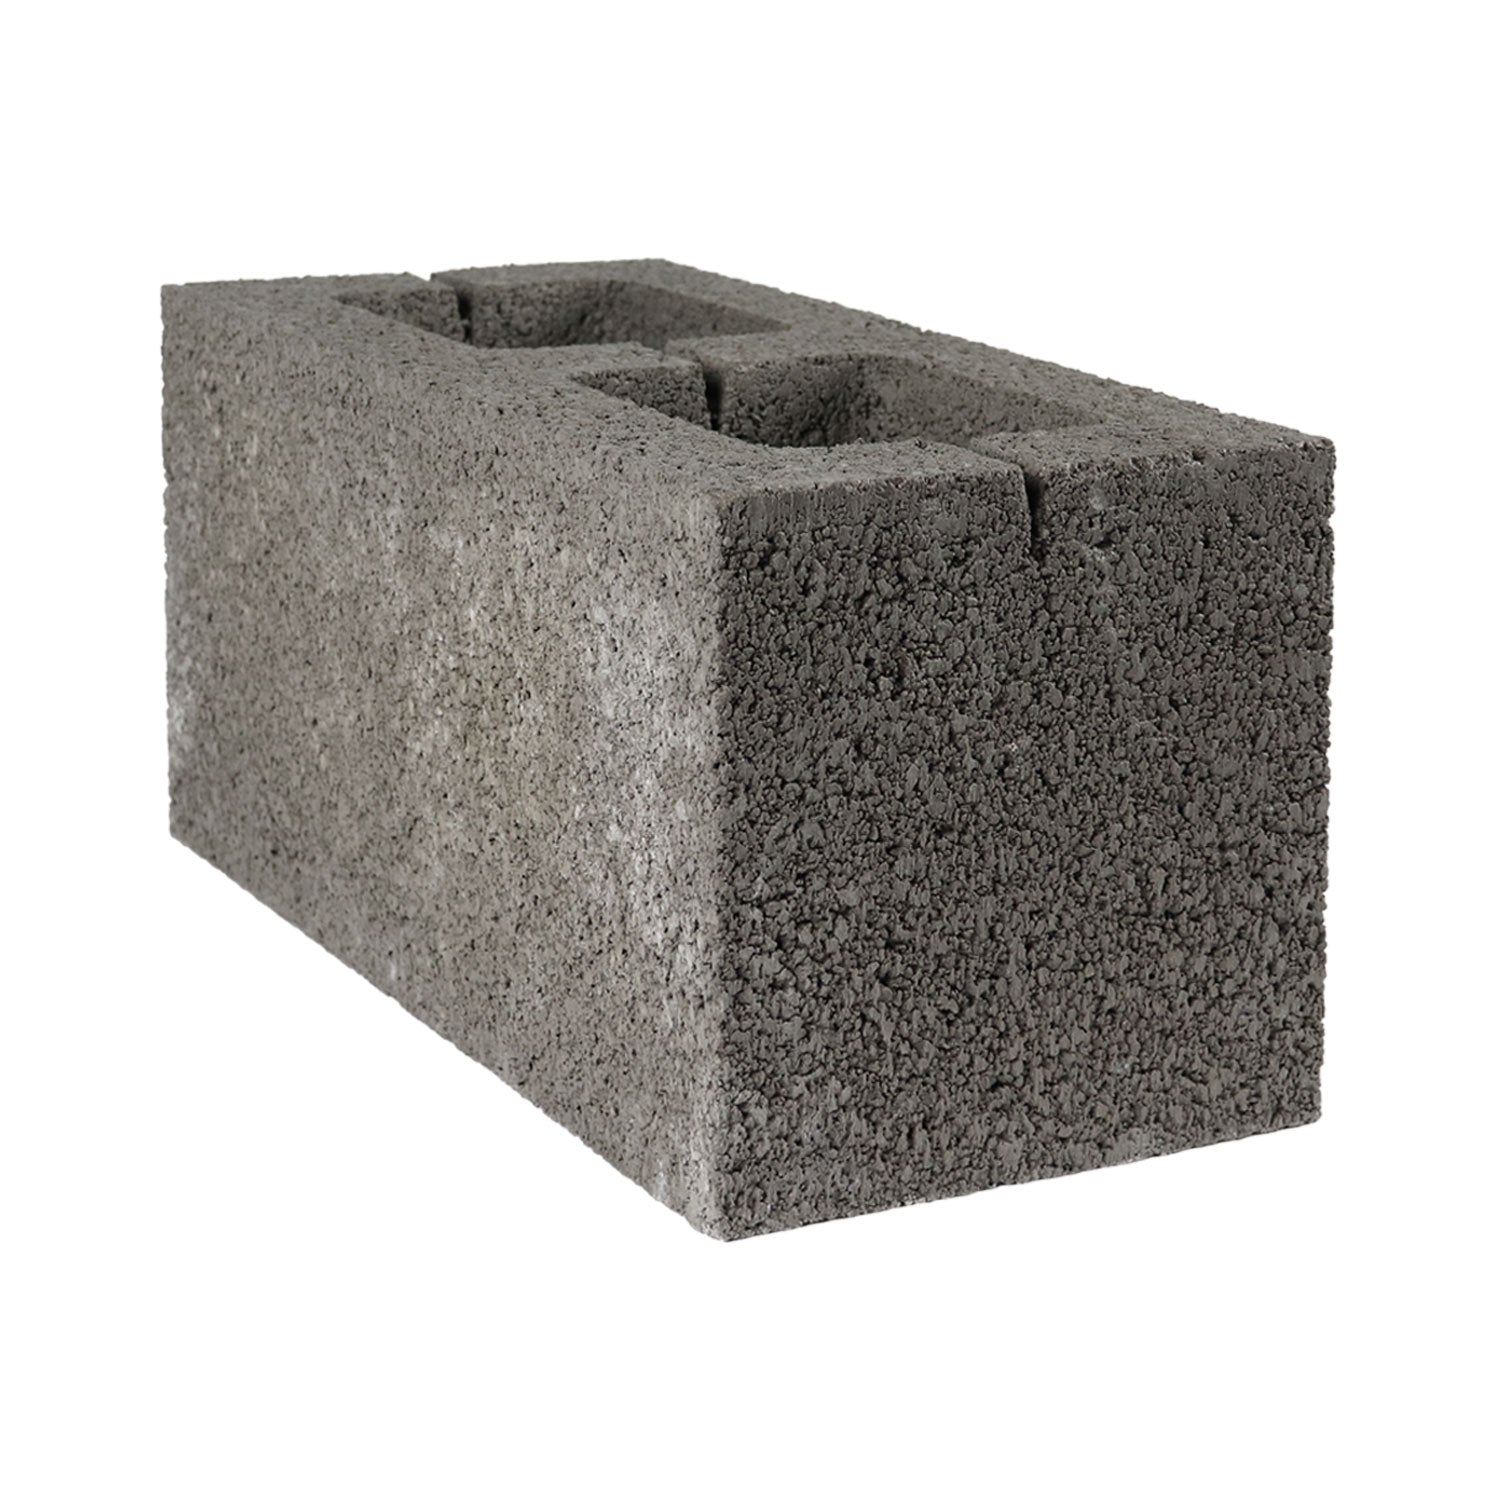 Concrete Hollow Block 215mm